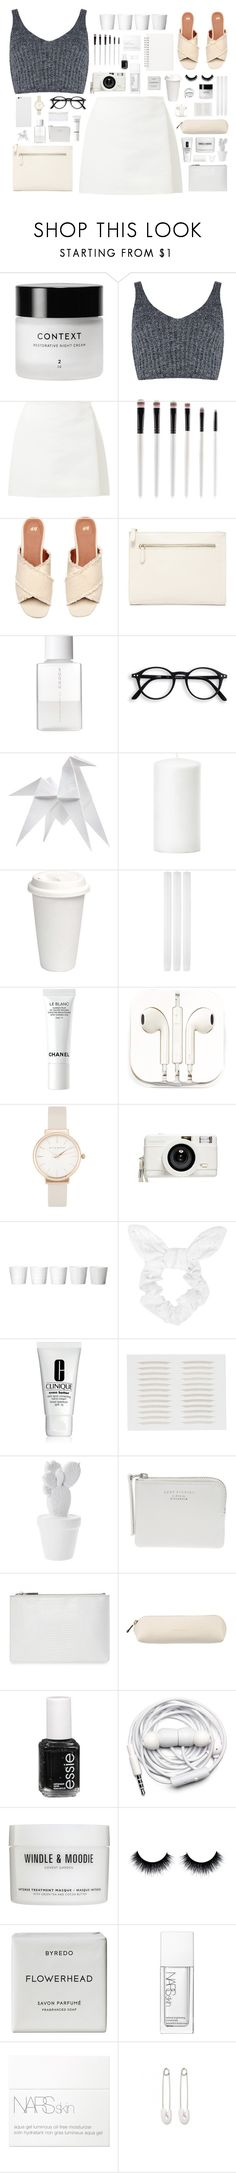 """""""Crossover Mules - Collab with brooklynself"""" by trendytomato ❤ liked on Polyvore featuring J.O.A., Zaid Affas, Forever 21, SUQQU, Hermès, Muji, Chanel, PhunkeeTree, Olivia Burton and Lomography"""